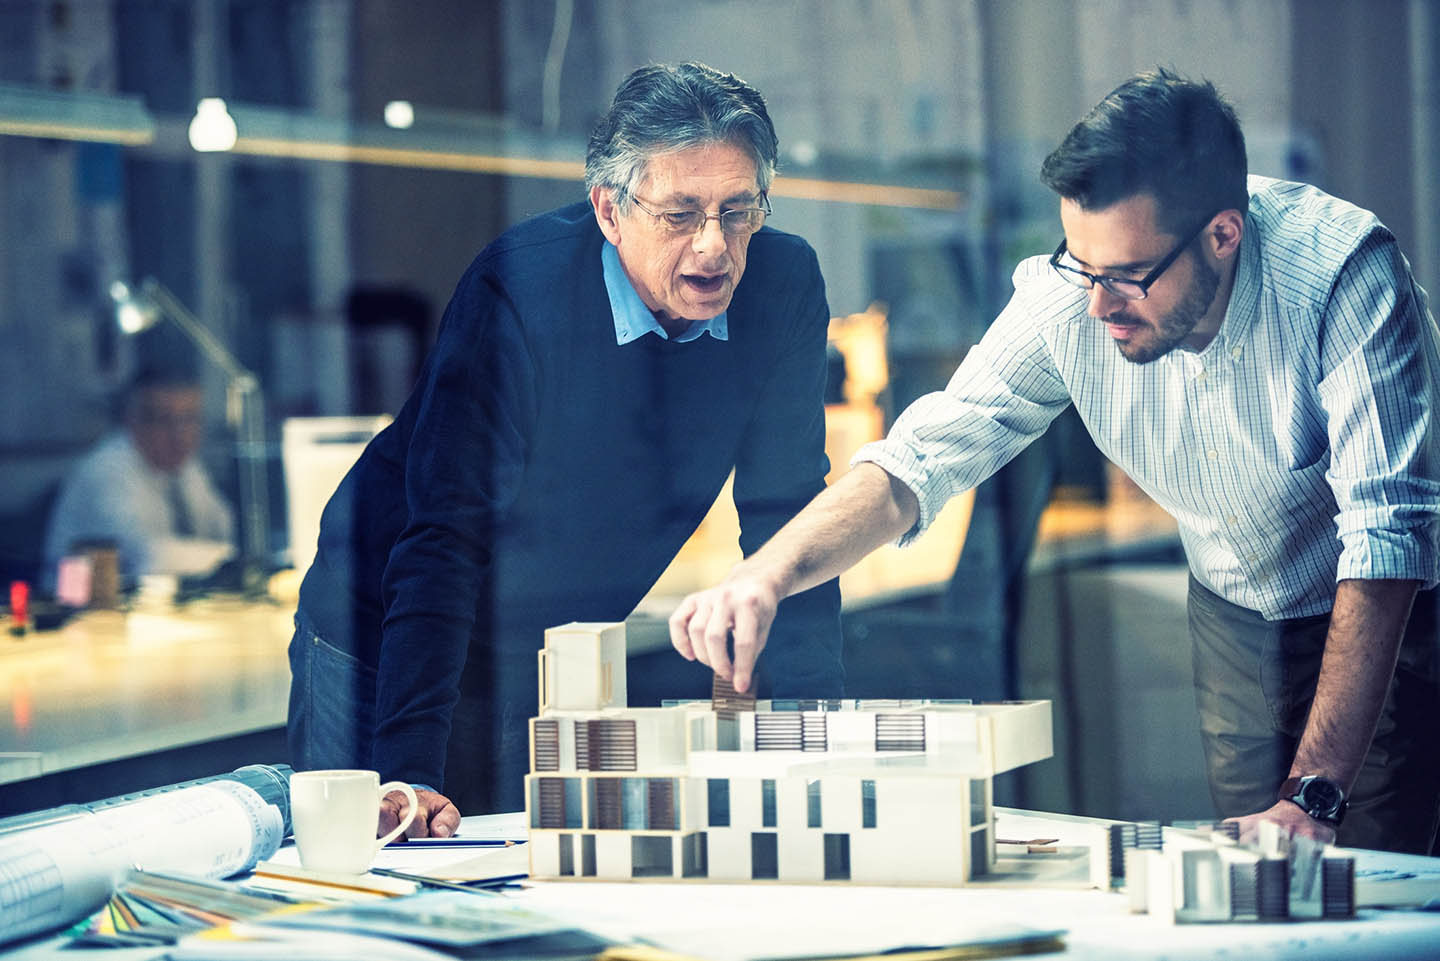 Young architect explaining project plan to senior coworker in the office with the help of an architectural model, shot through glass.